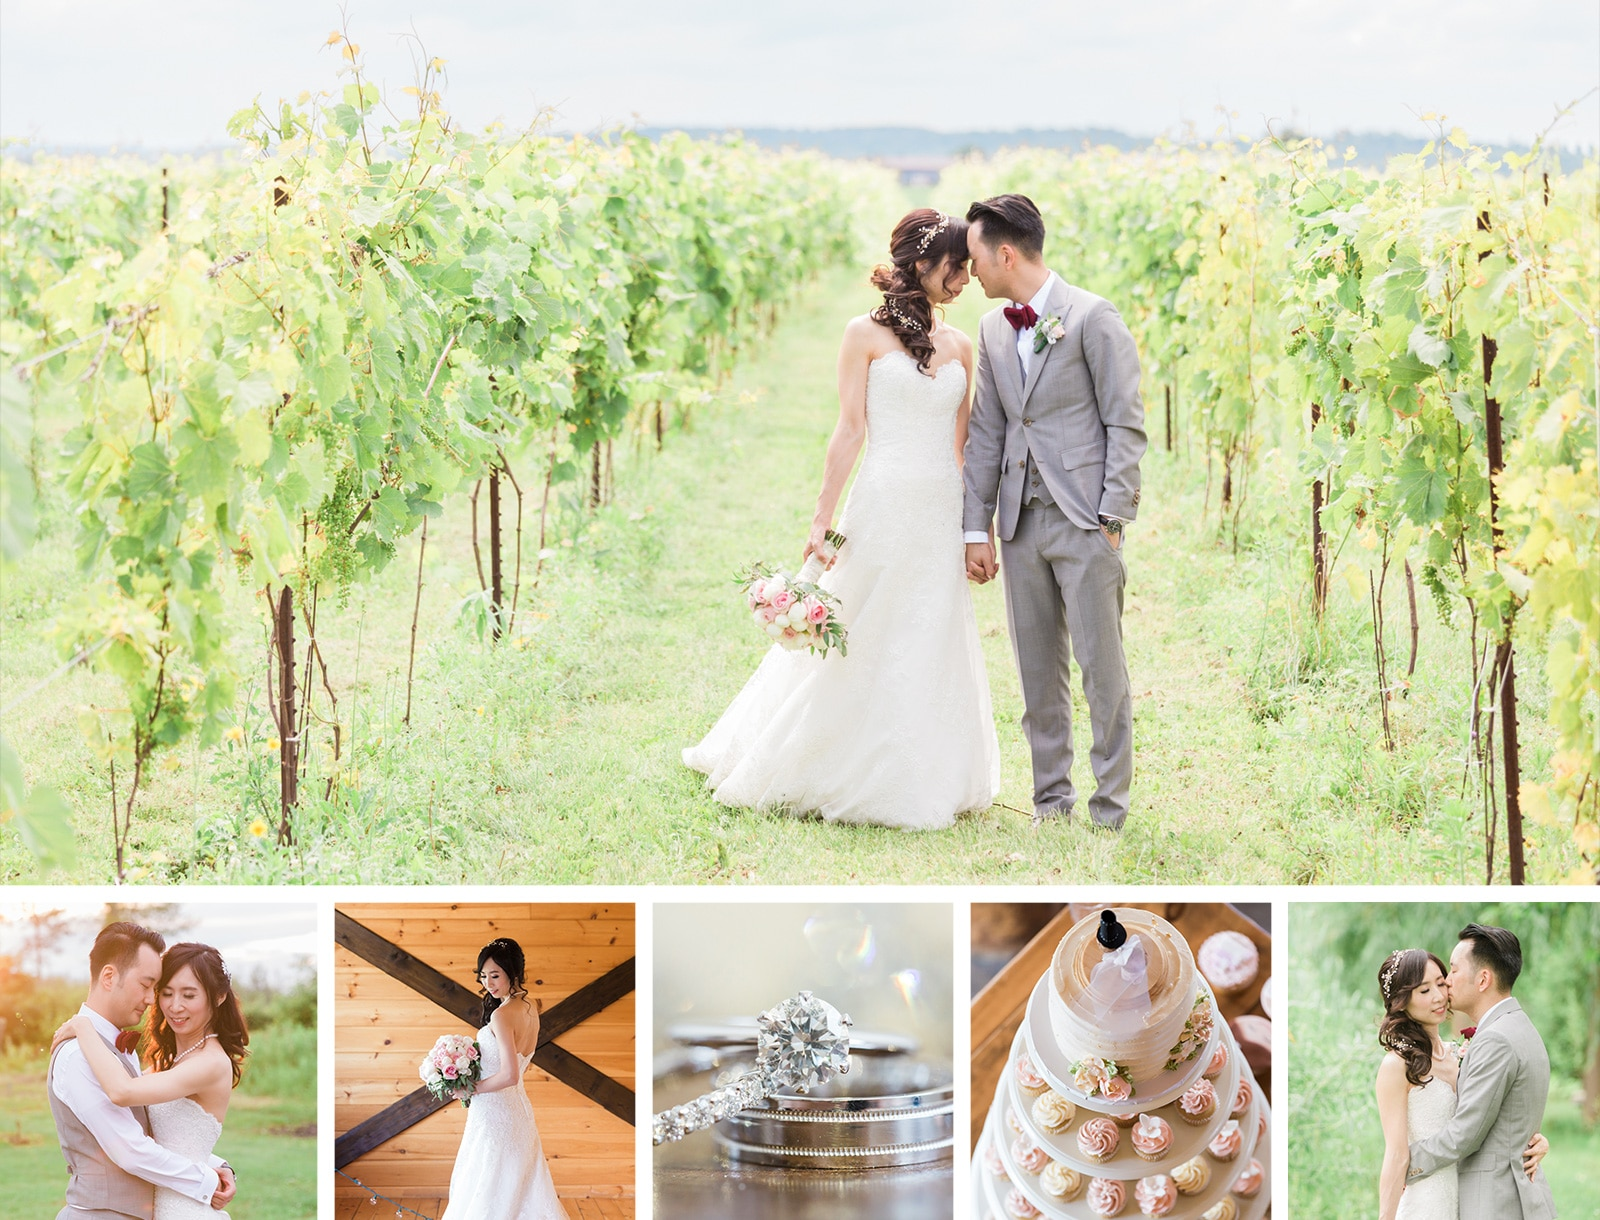 A Rustic Summer Vineyard Wedding at Holland Marsh Wineries: Louisa + Jeff